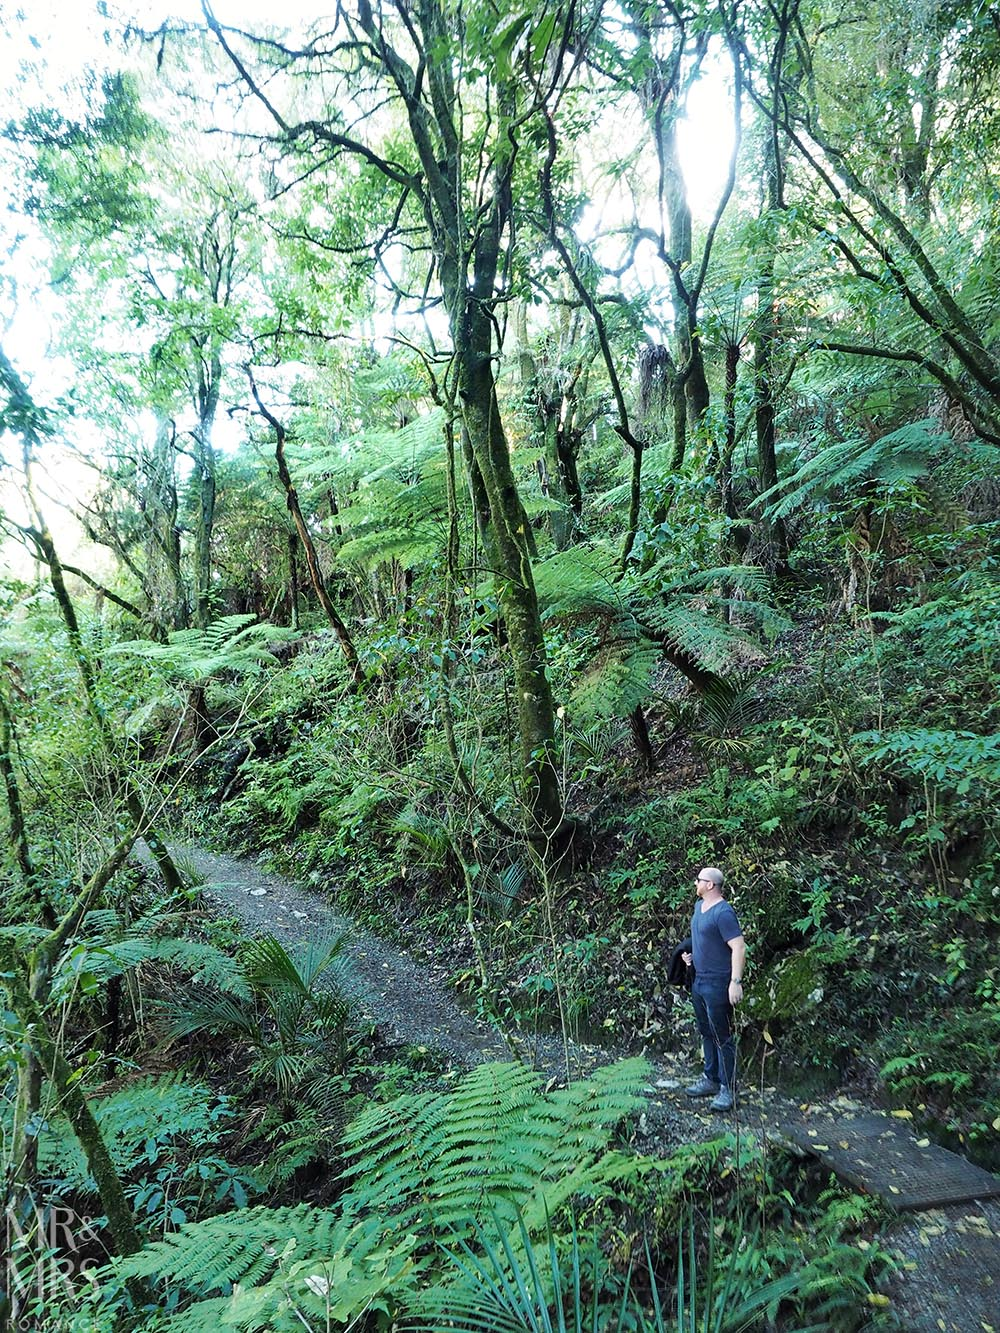 New Zealand Waitomo glowworm cave and Blackwater Rafting - bushwalk